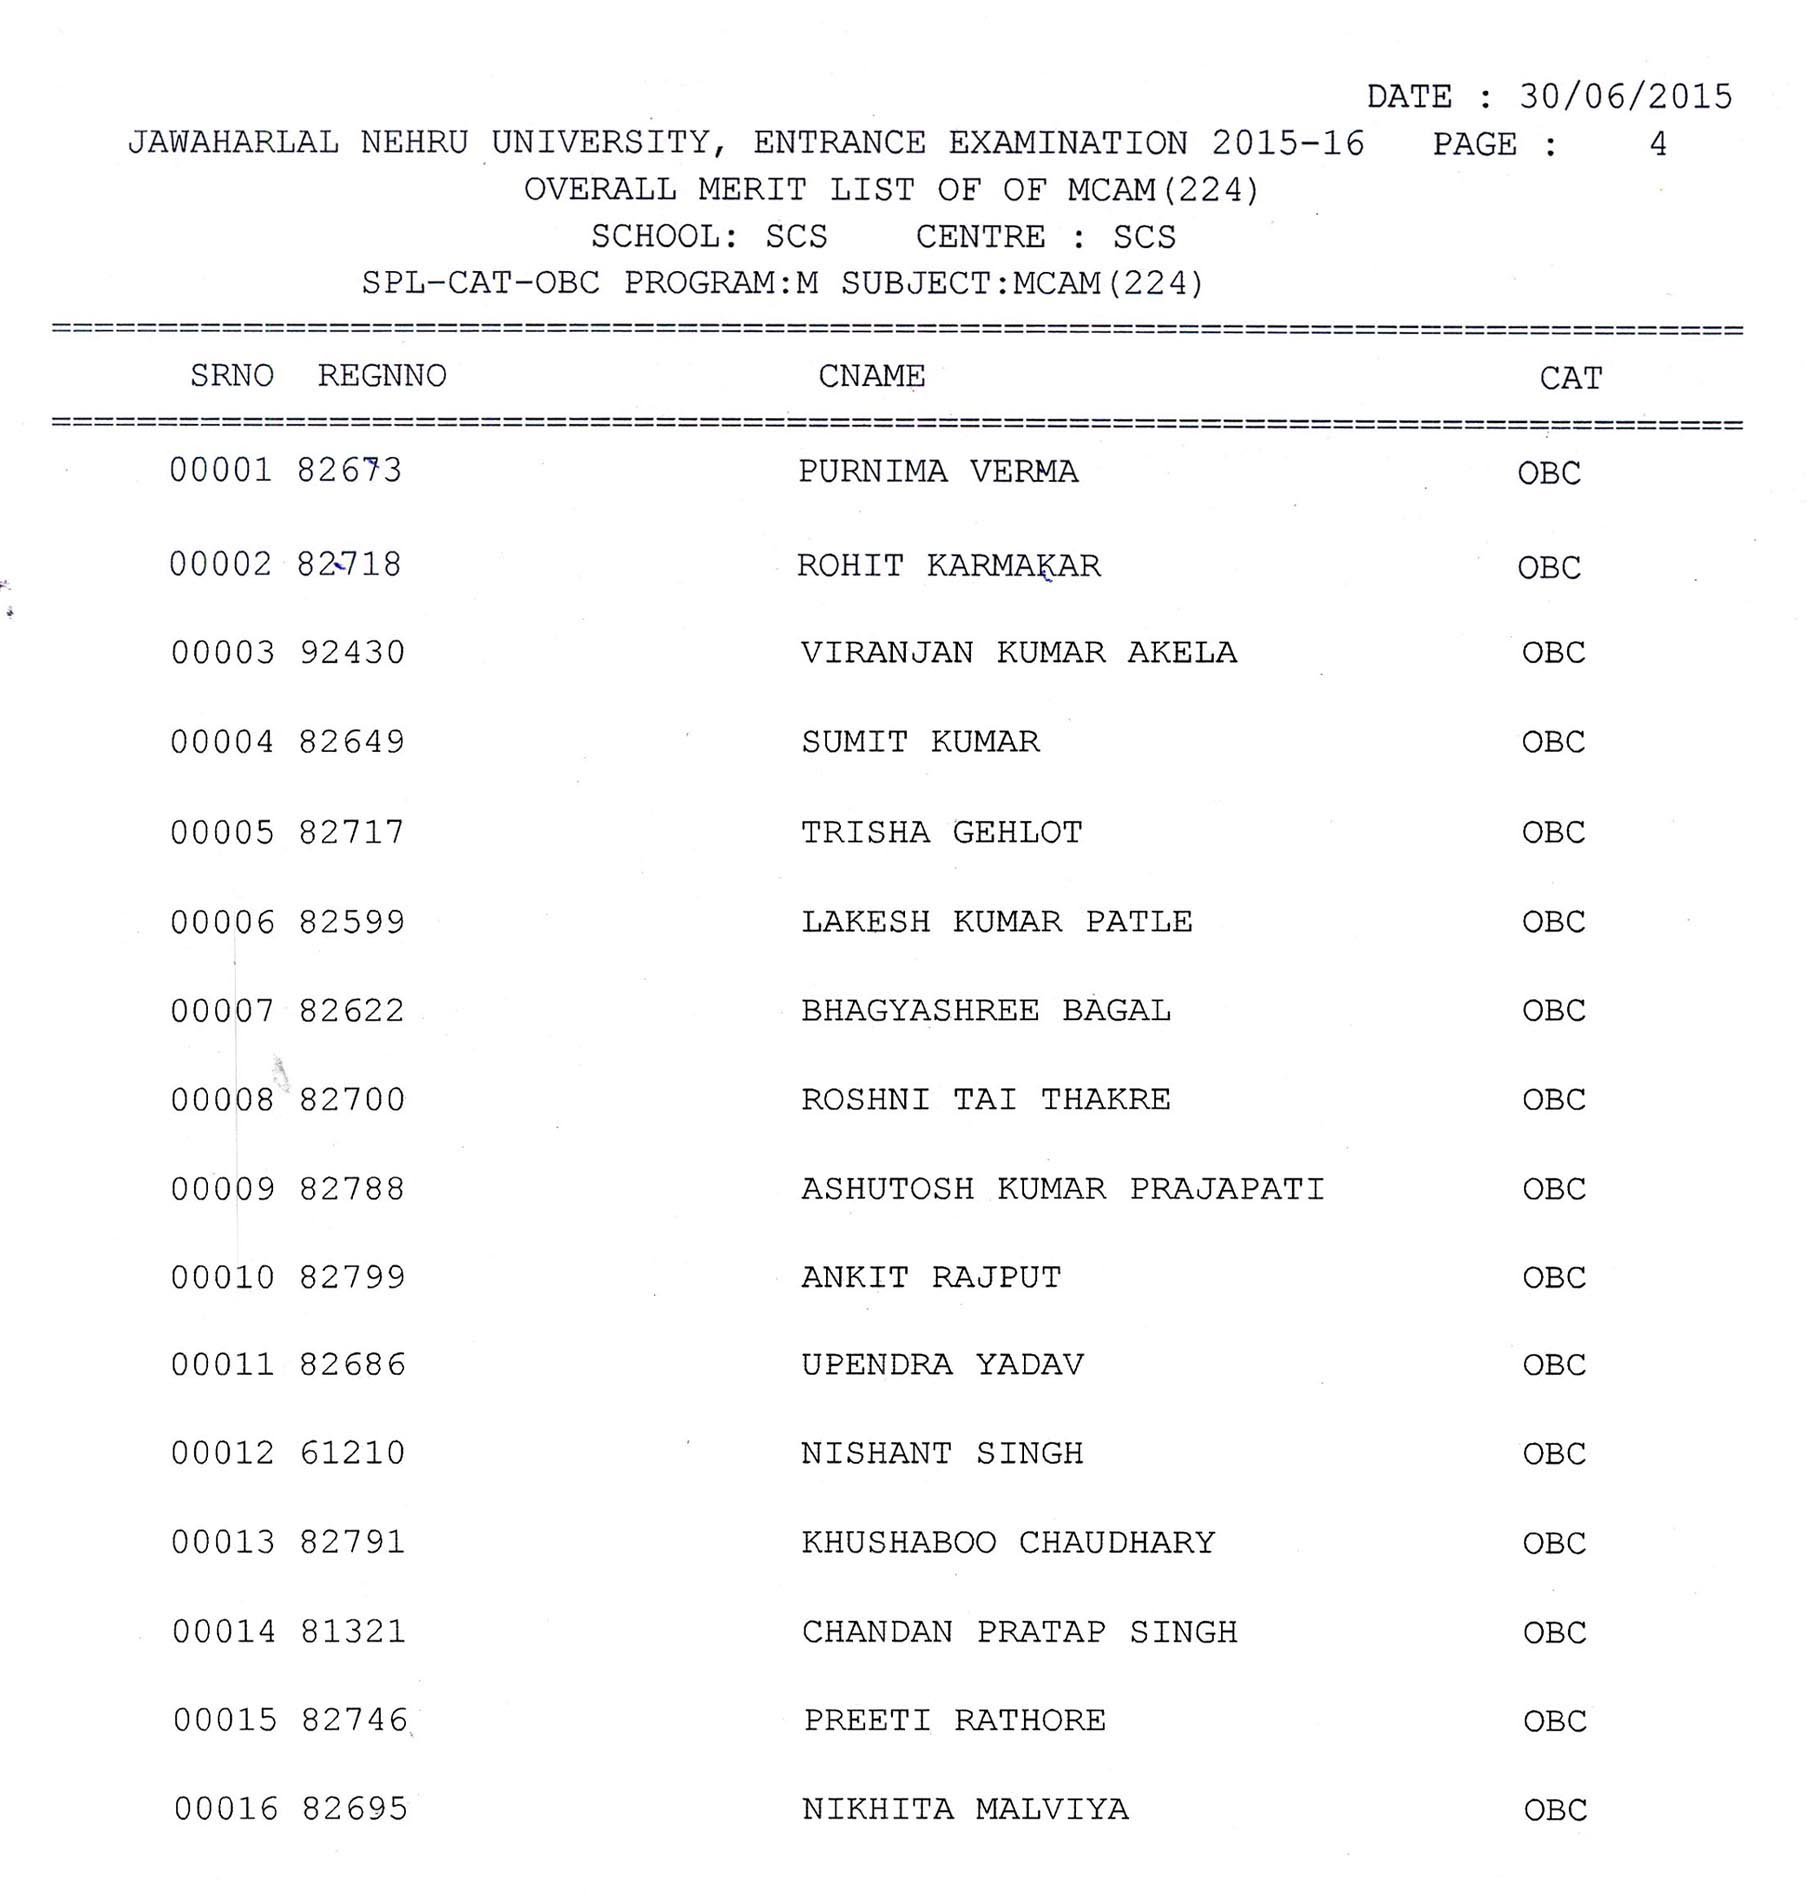 OBC LIST